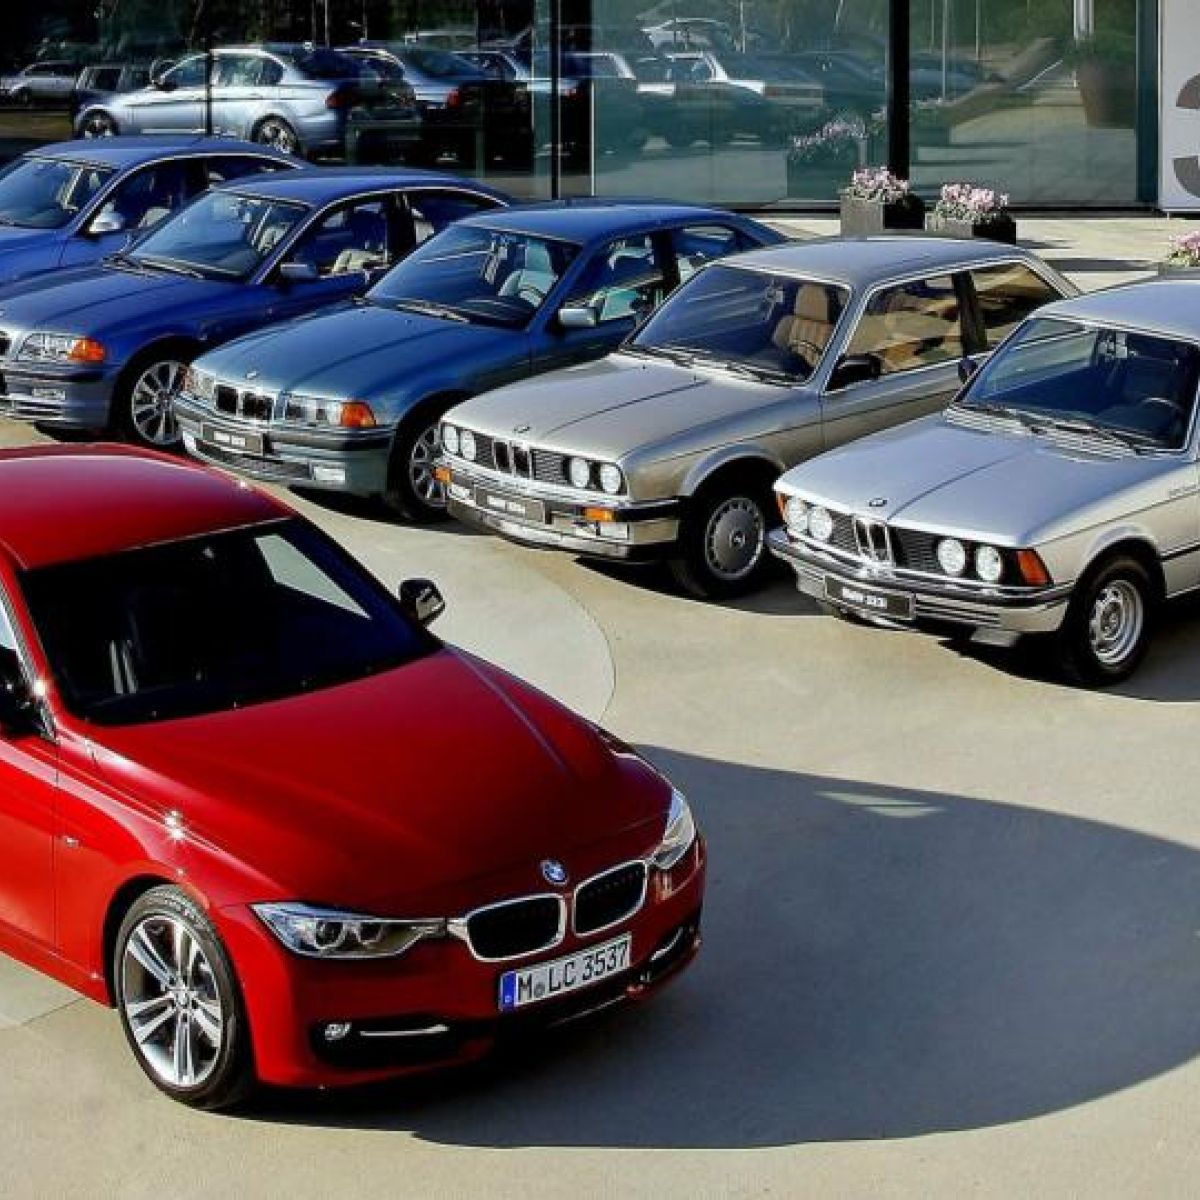 ffeb8db81b BMW s big-selling 3-Series hits its 40th birthday